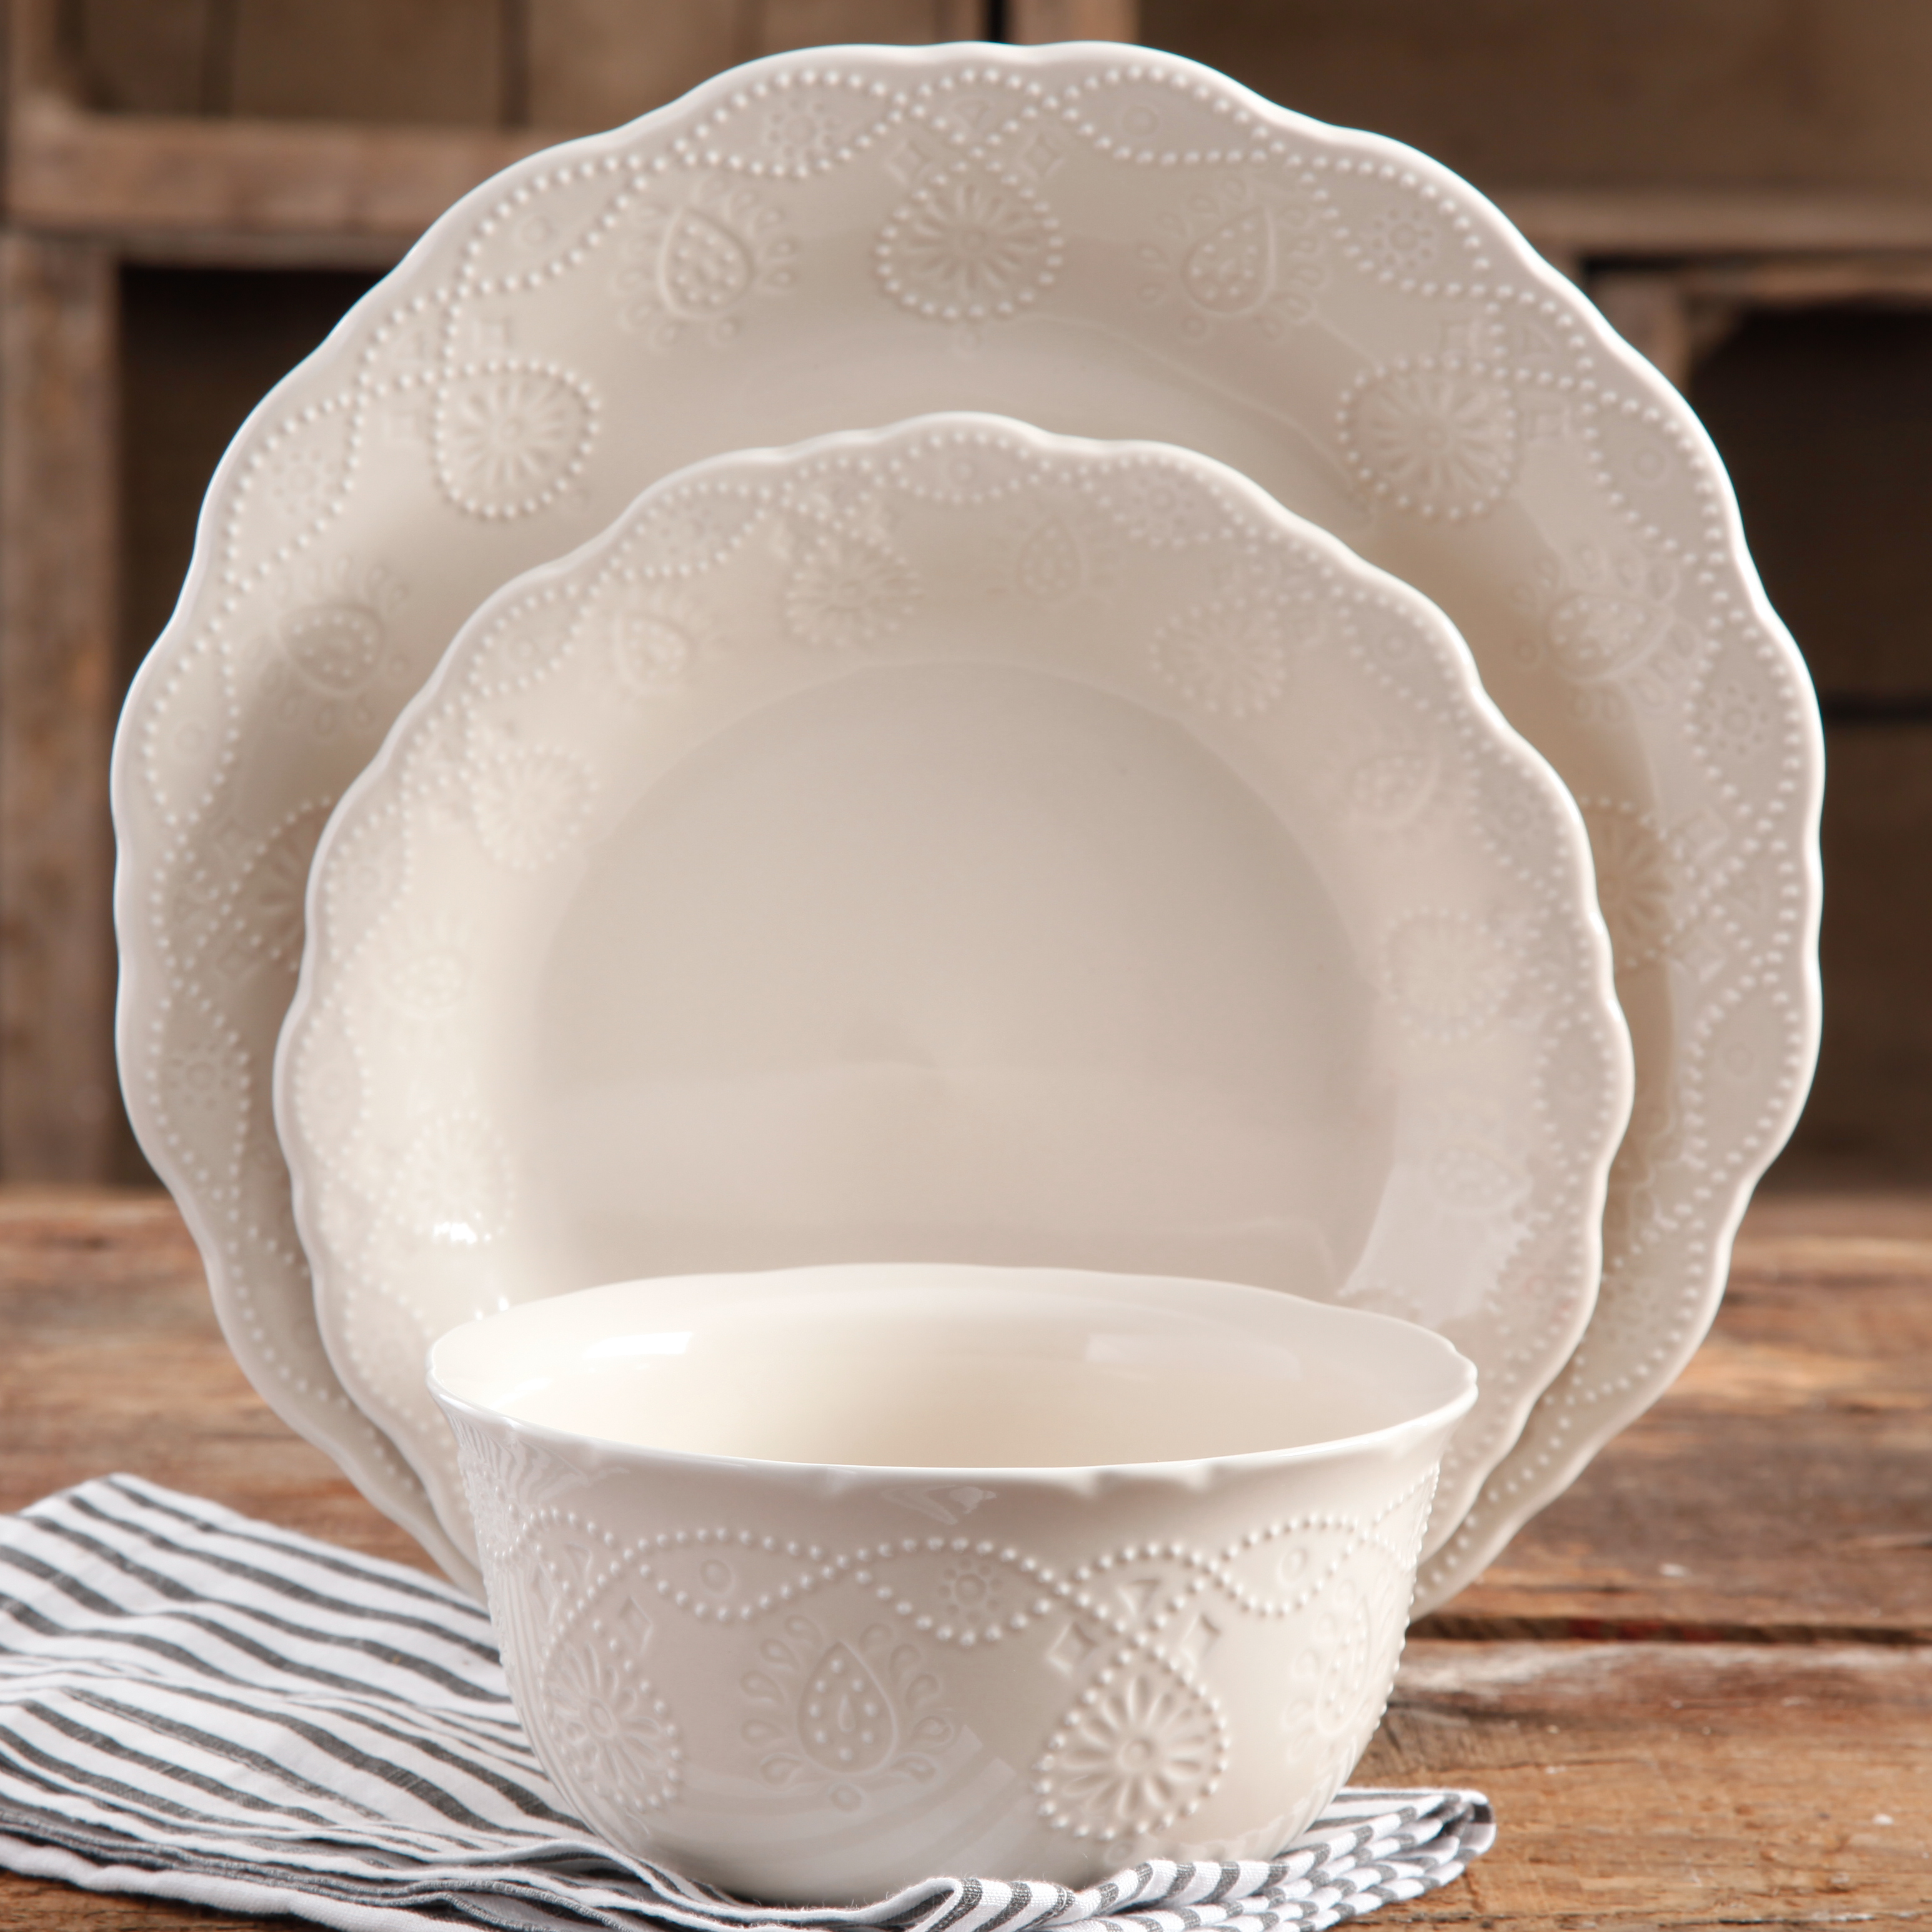 The Pioneer Woman Cowgirl Lace 12-Piece Dinnerware Set & The Pioneer Woman Cowgirl Lace 12-Piece Dinnerware Set - Walmart.com